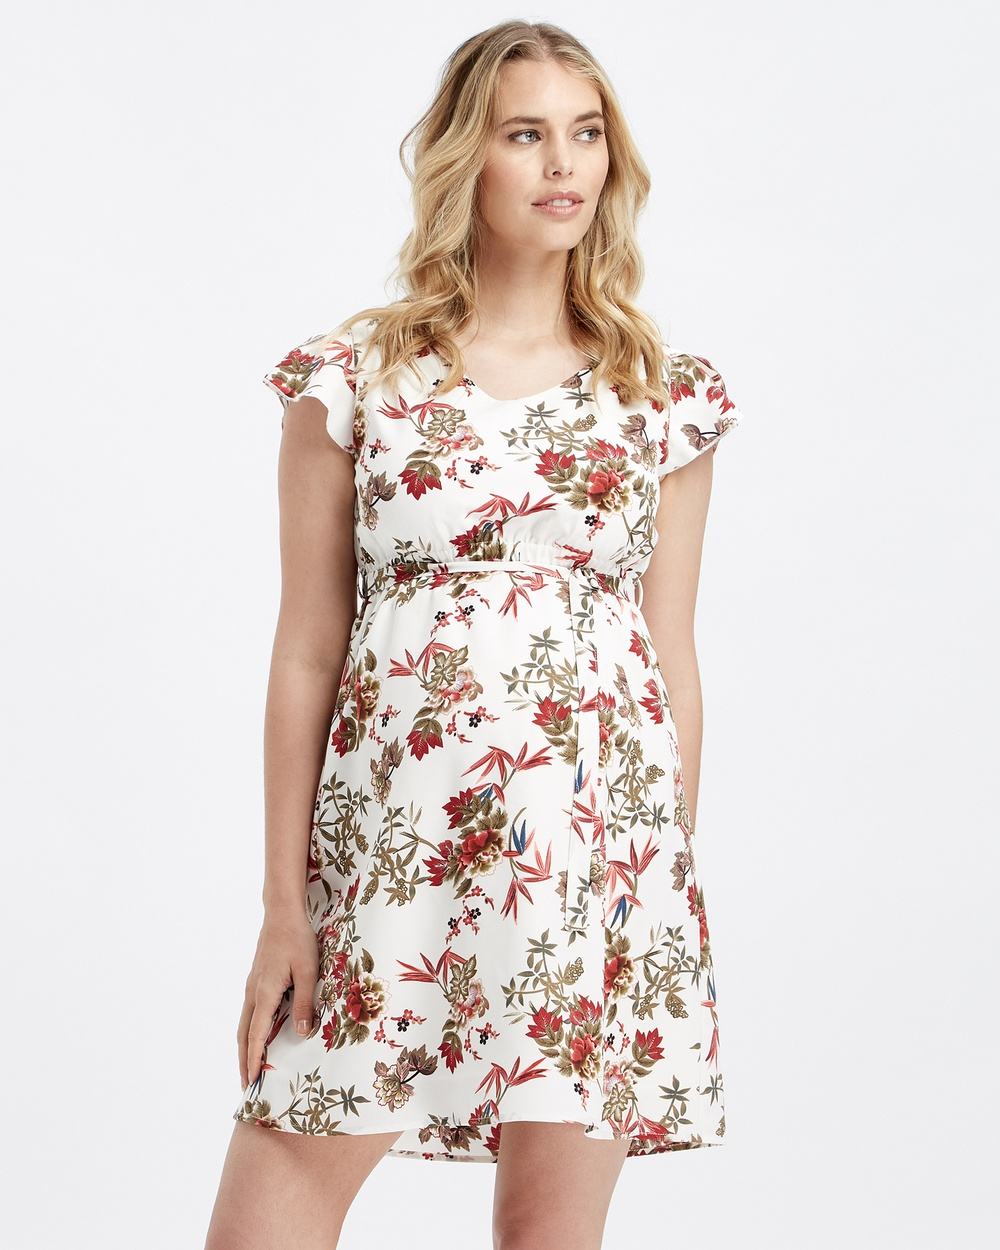 Glow Mama White Red Floral Rika Maternity Dress